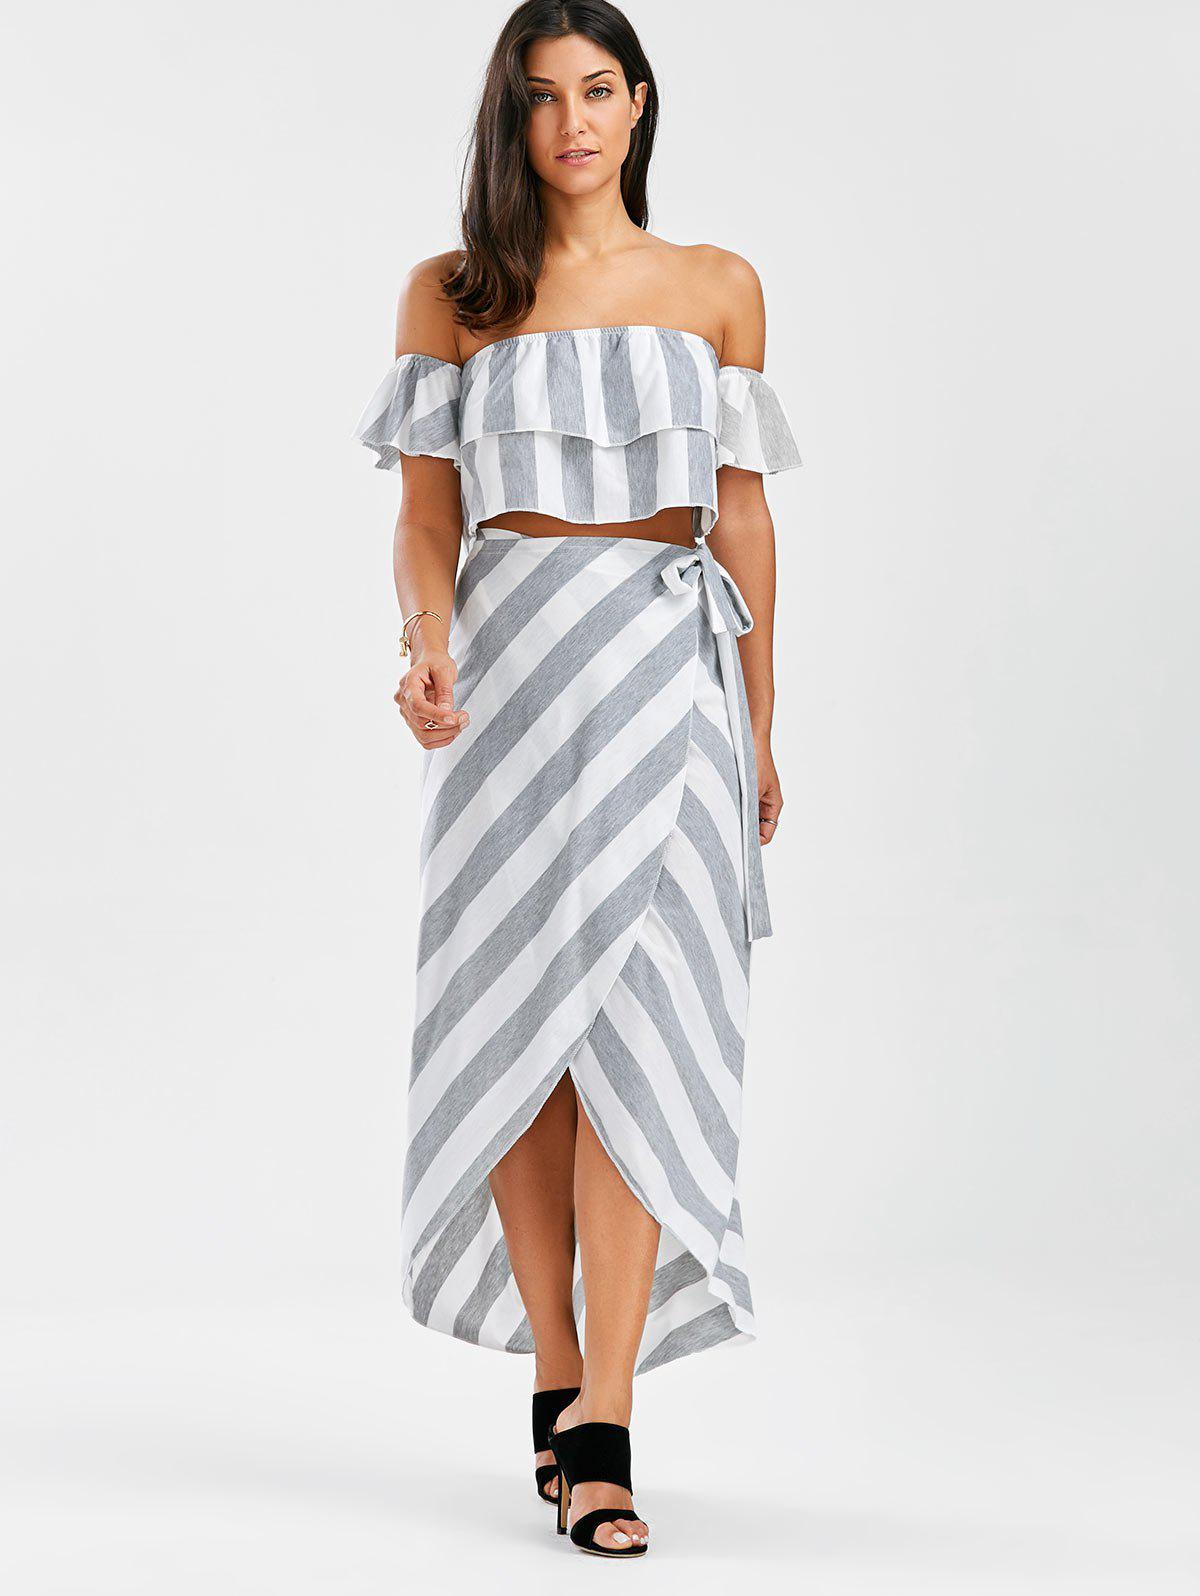 Off The Shoulder Flounce Top + Jupes à rayures - Gris et Blanc M